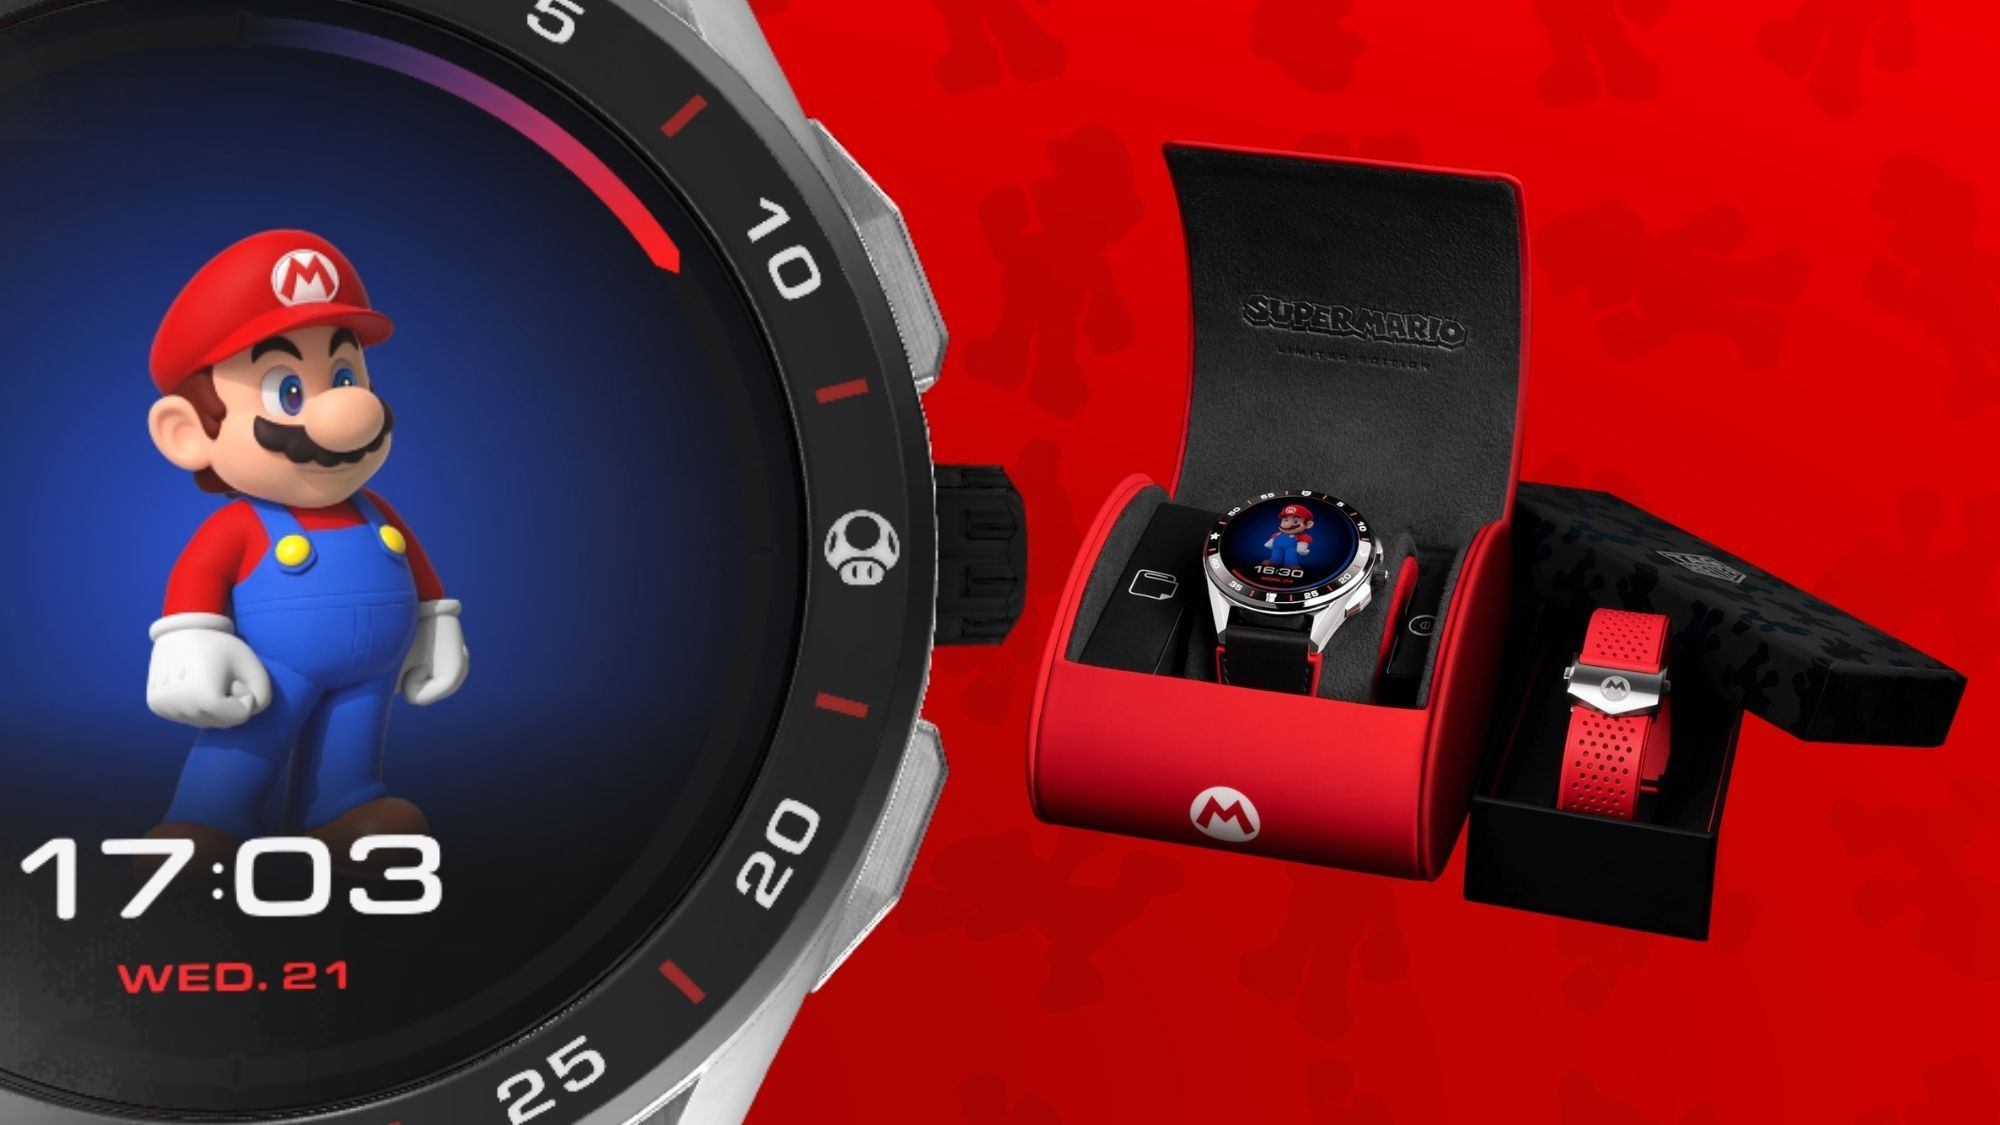 Super Mario-themed luxury smartwatch sells out pre-orders edited by Opinyon